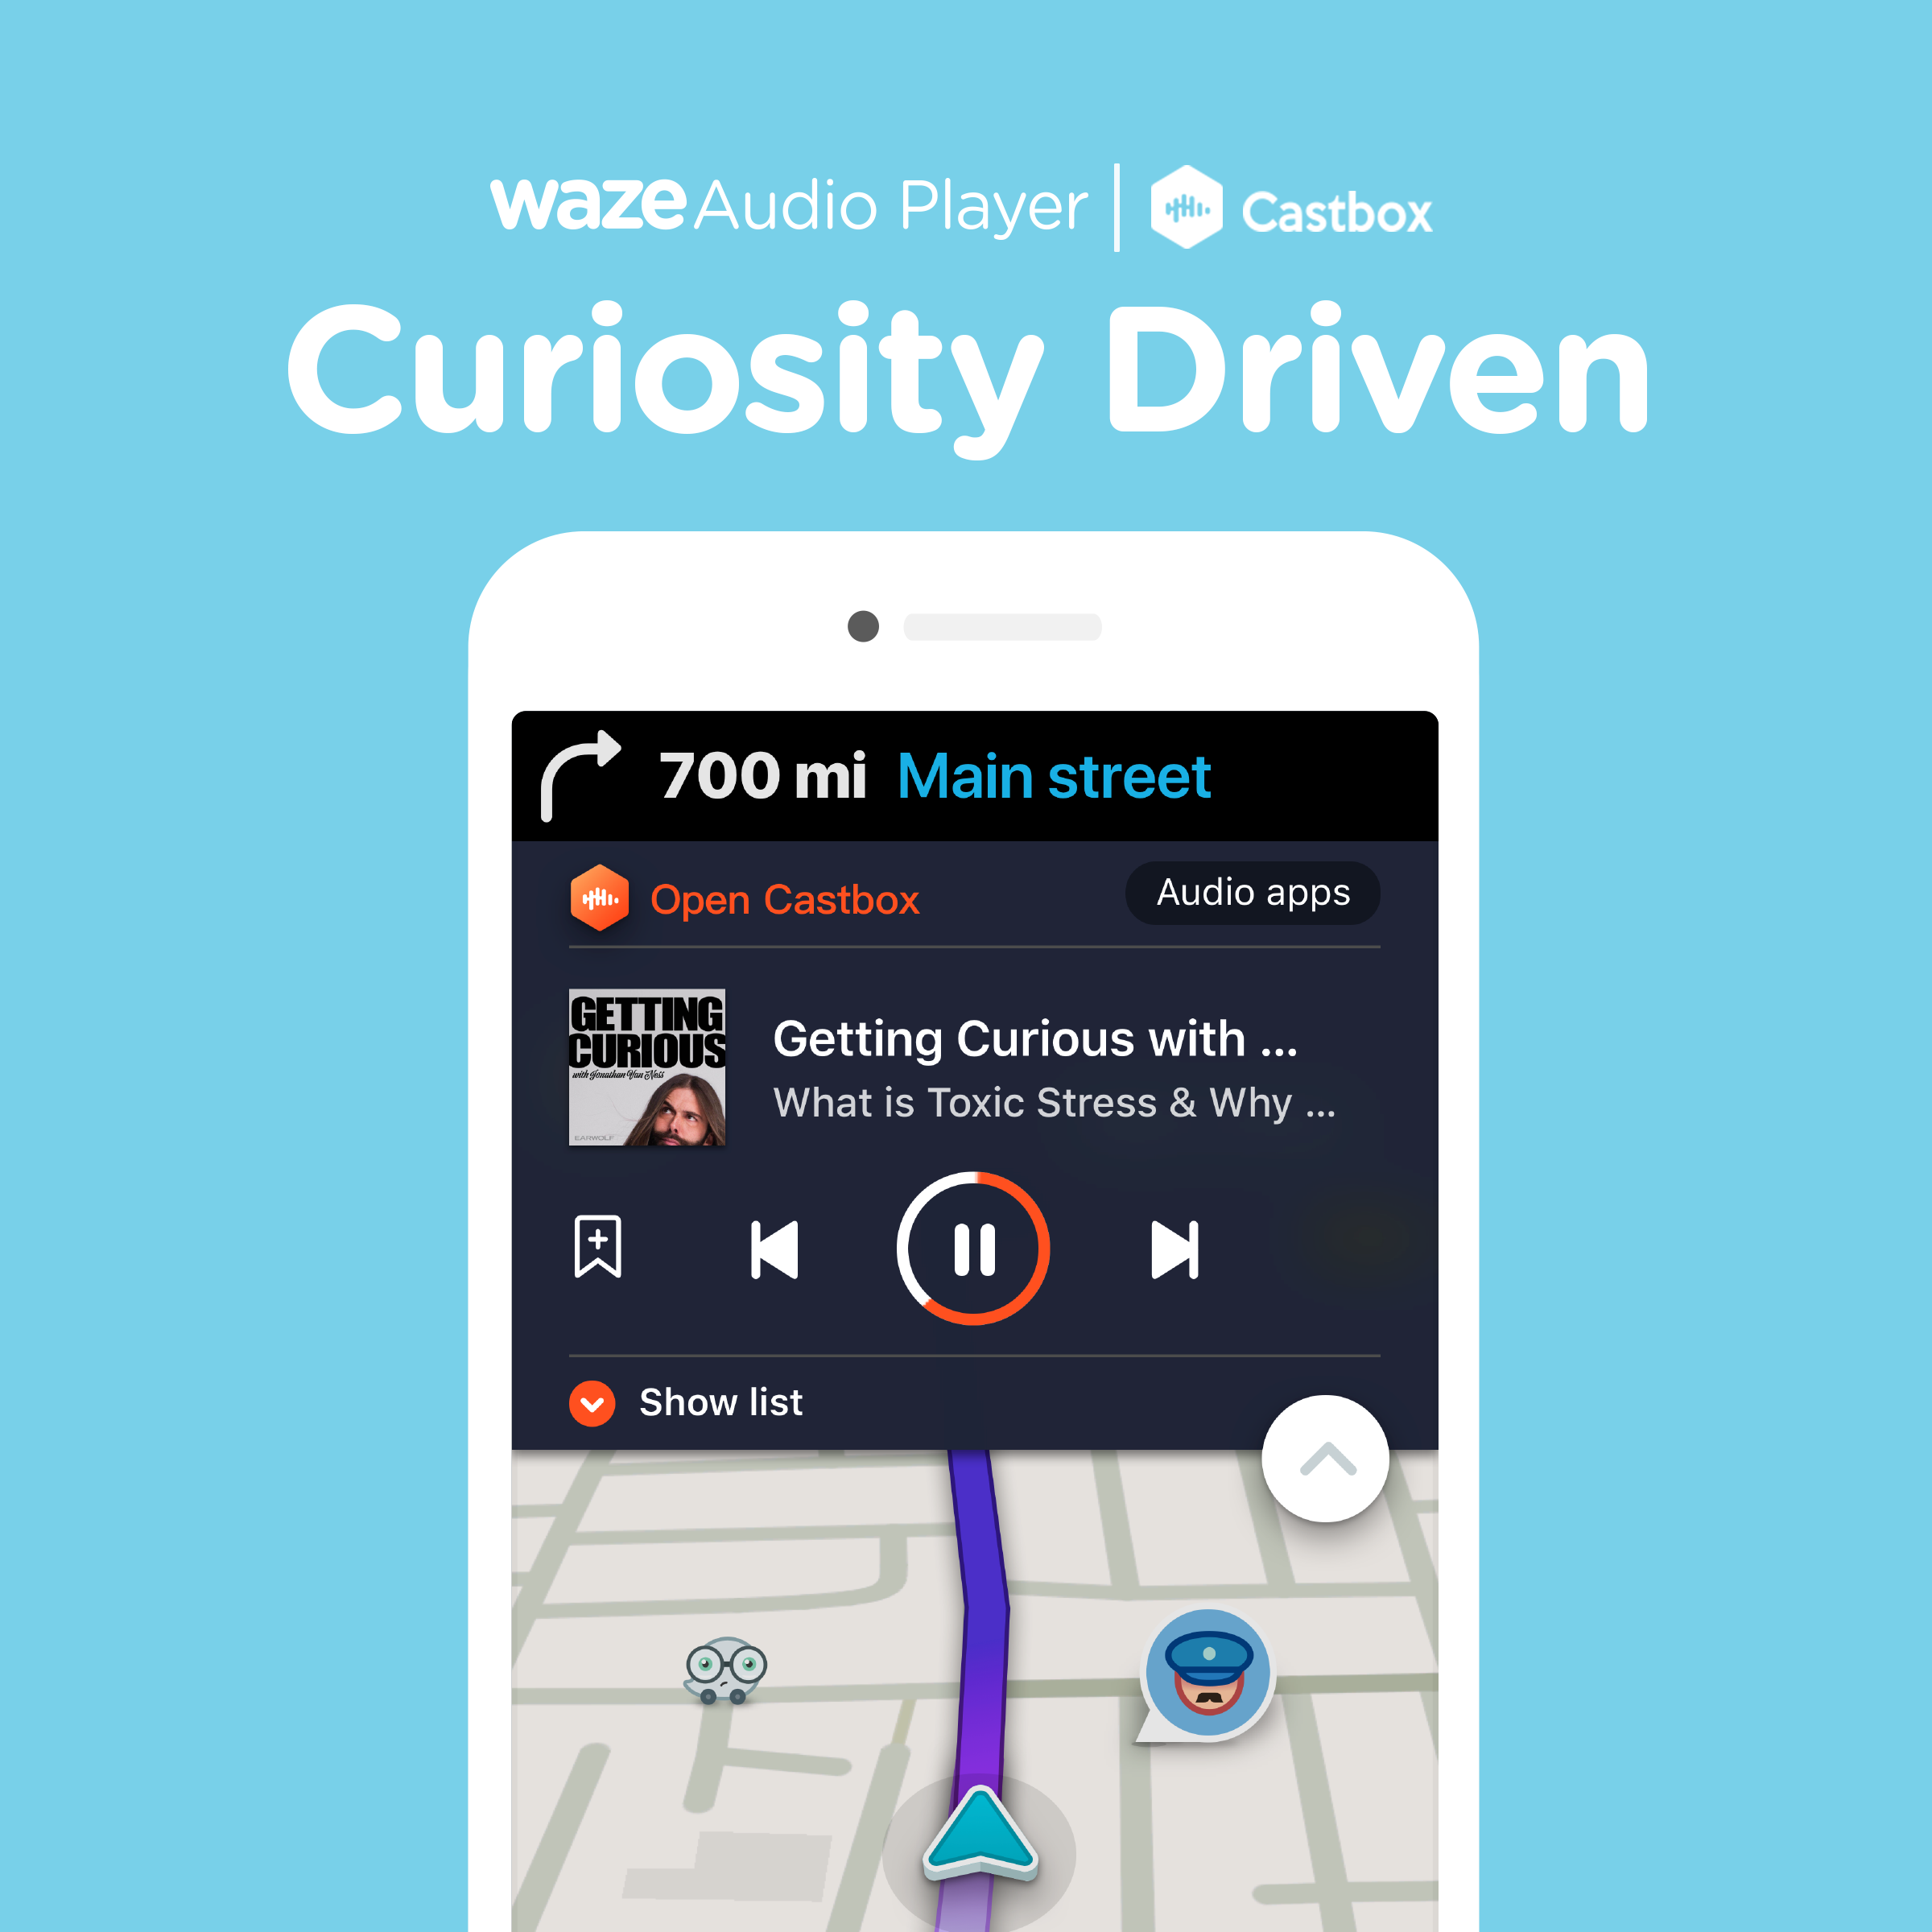 Waze teams up with Castbox to offer a dedicated podcast